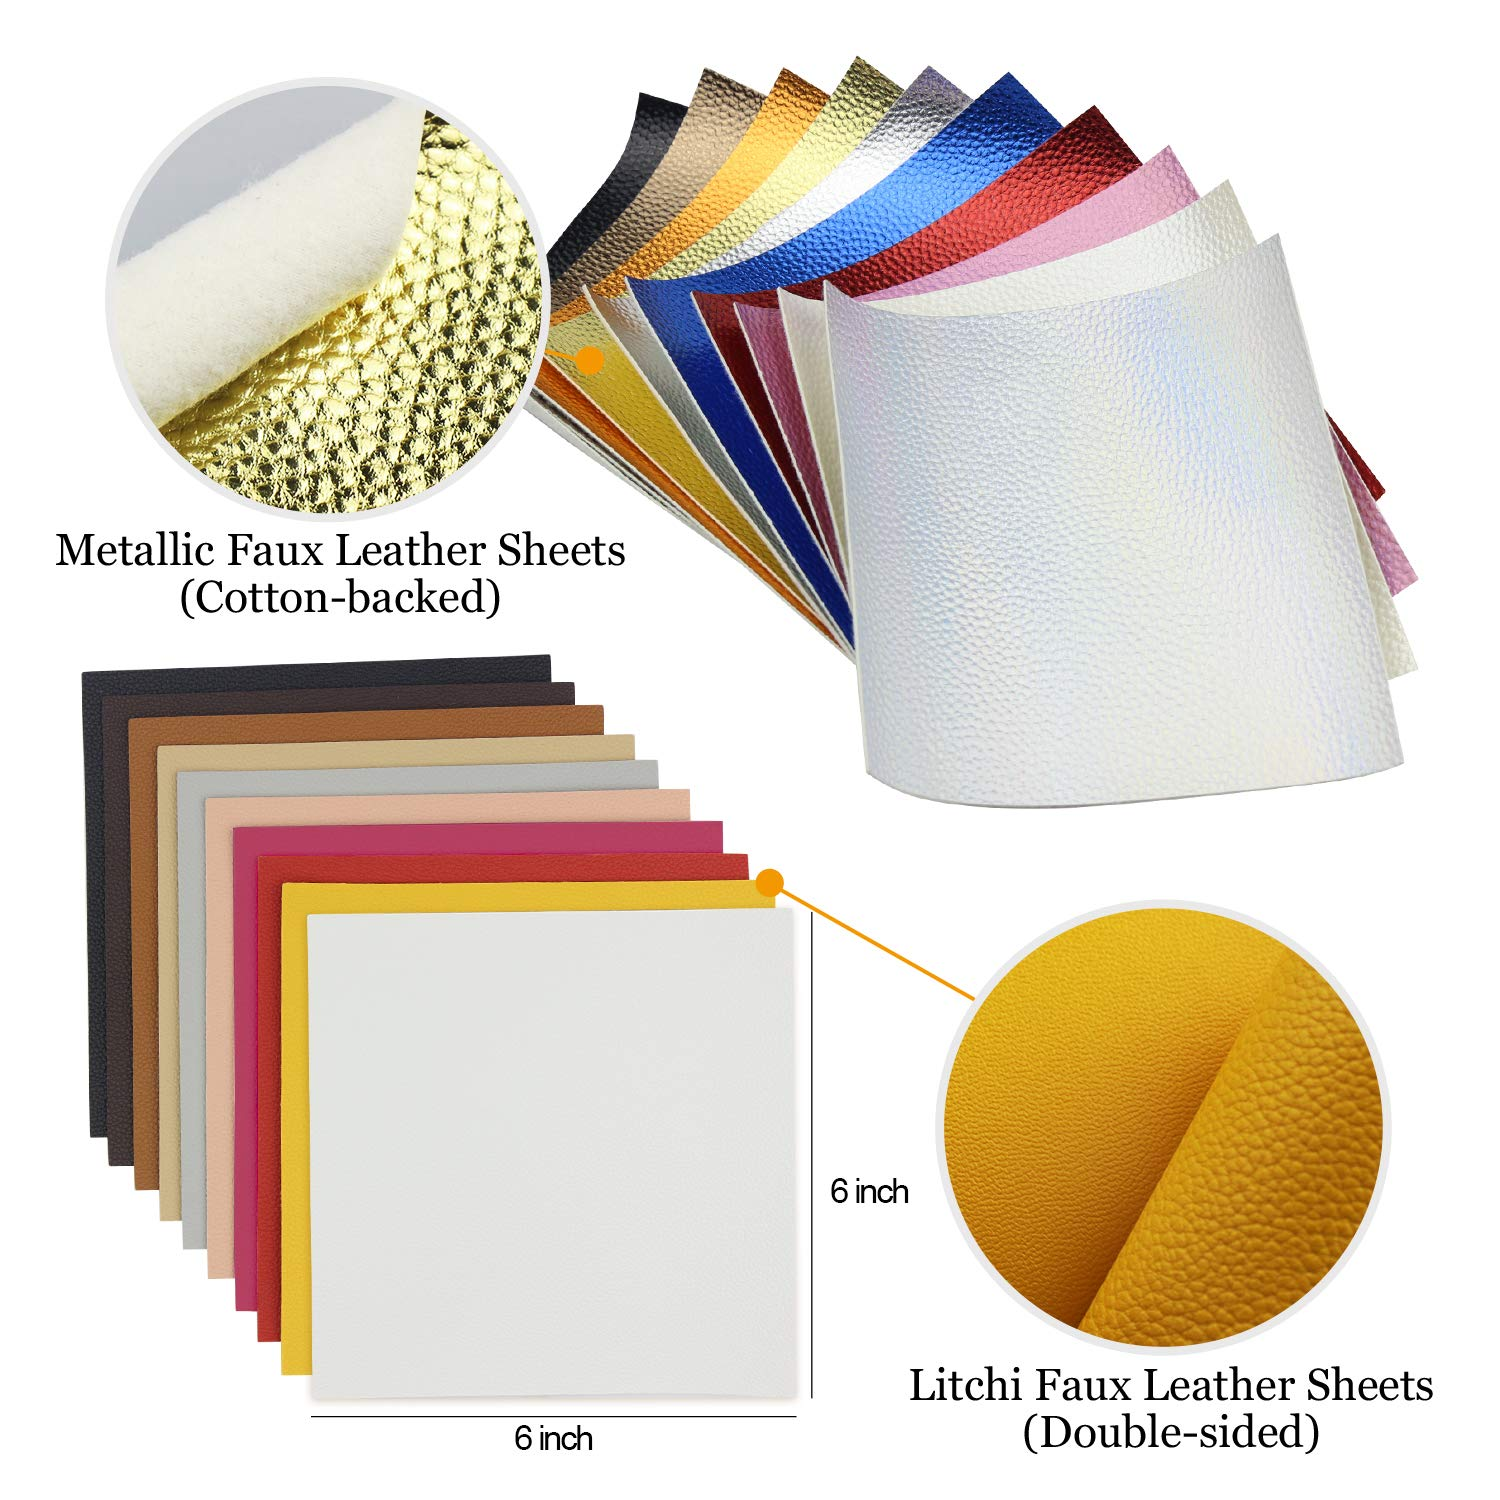 10pcs Metallic Faux Leather Sheets + 10pcs Double Sided Litchi Synthetic Leather Fabric Sheets(6''x 6'') with 140pcs Earring Hooks, 140pcs Jump Rings, Pliers and Cut Molds for Earring Making Crafts by SIMPZIA (Image #4)